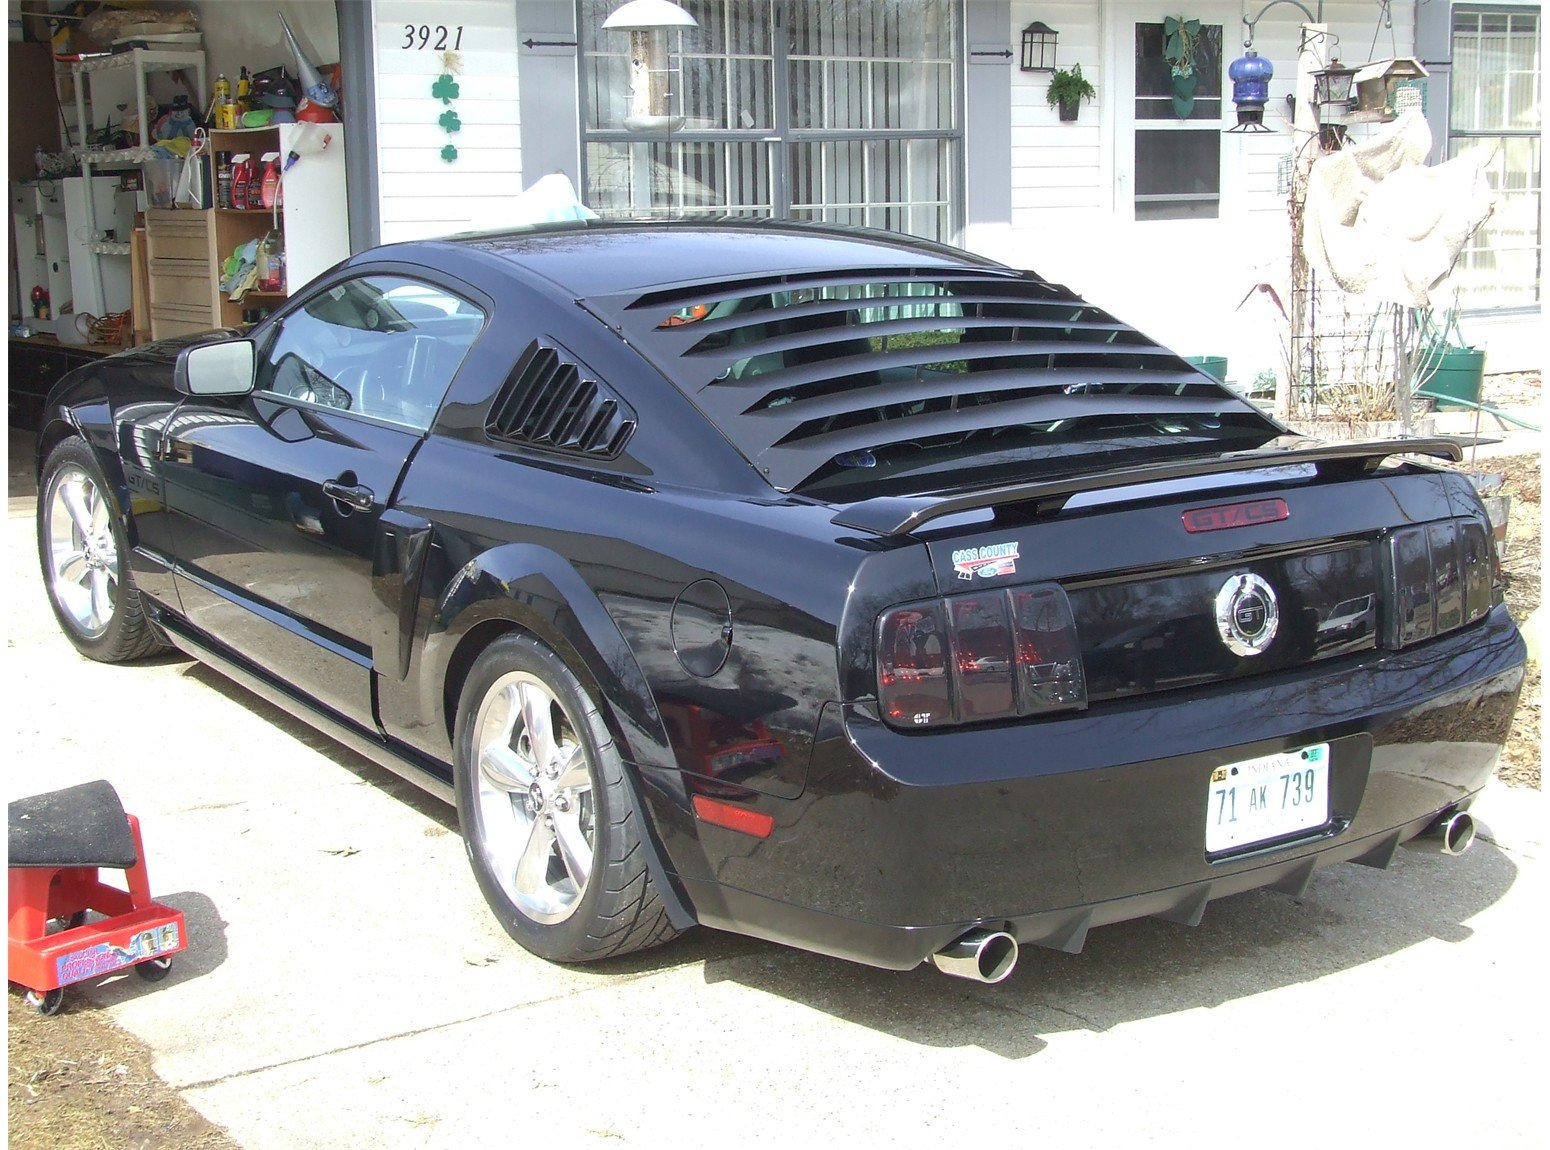 2005 mustang gt rear window louvers opinions wanted dscf0303 1550x1150 jpg